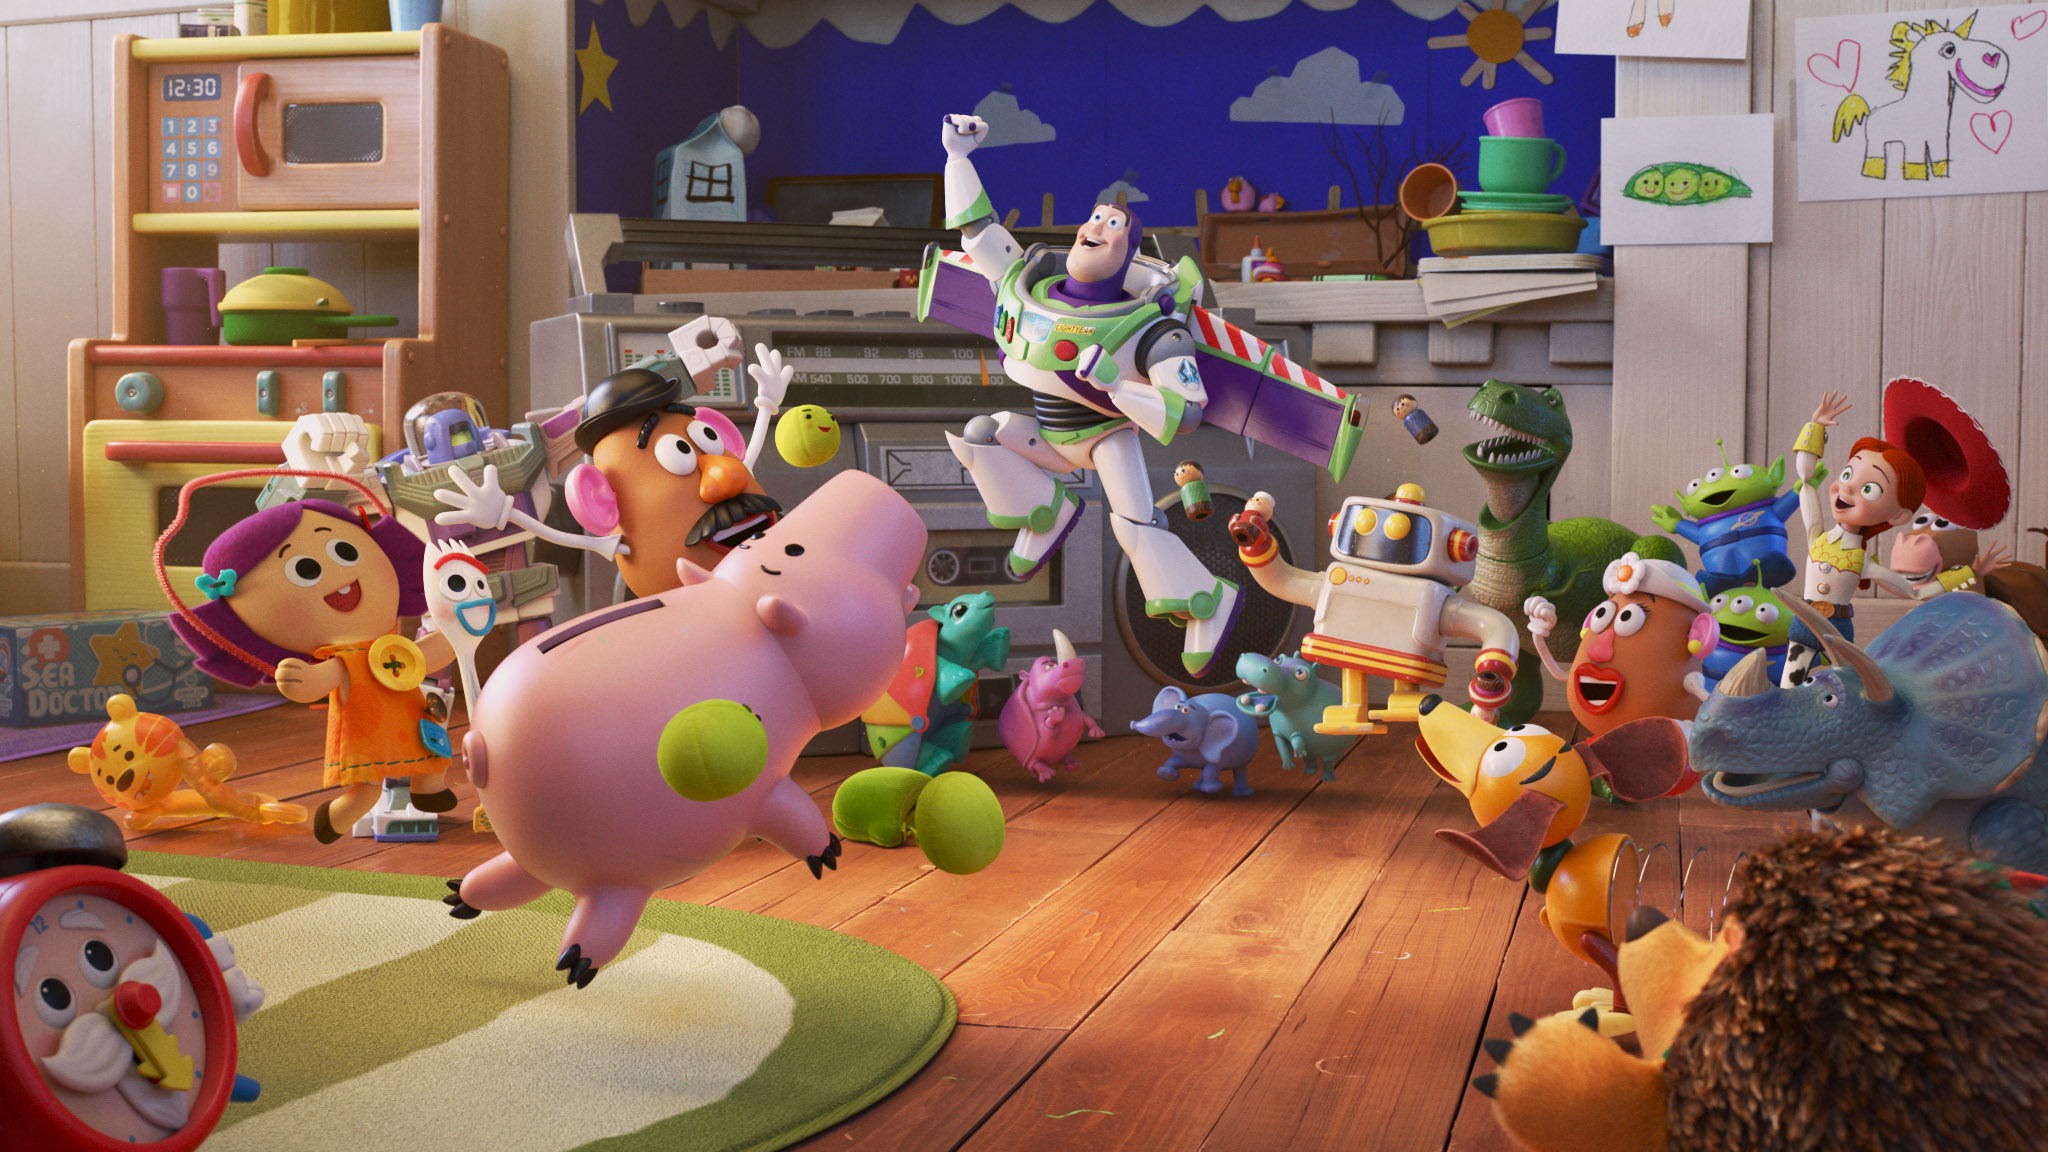 'Pixar Popcorn' Trailer: Disney+ to Premiere Animated Shorts Featuring Iconic Characters